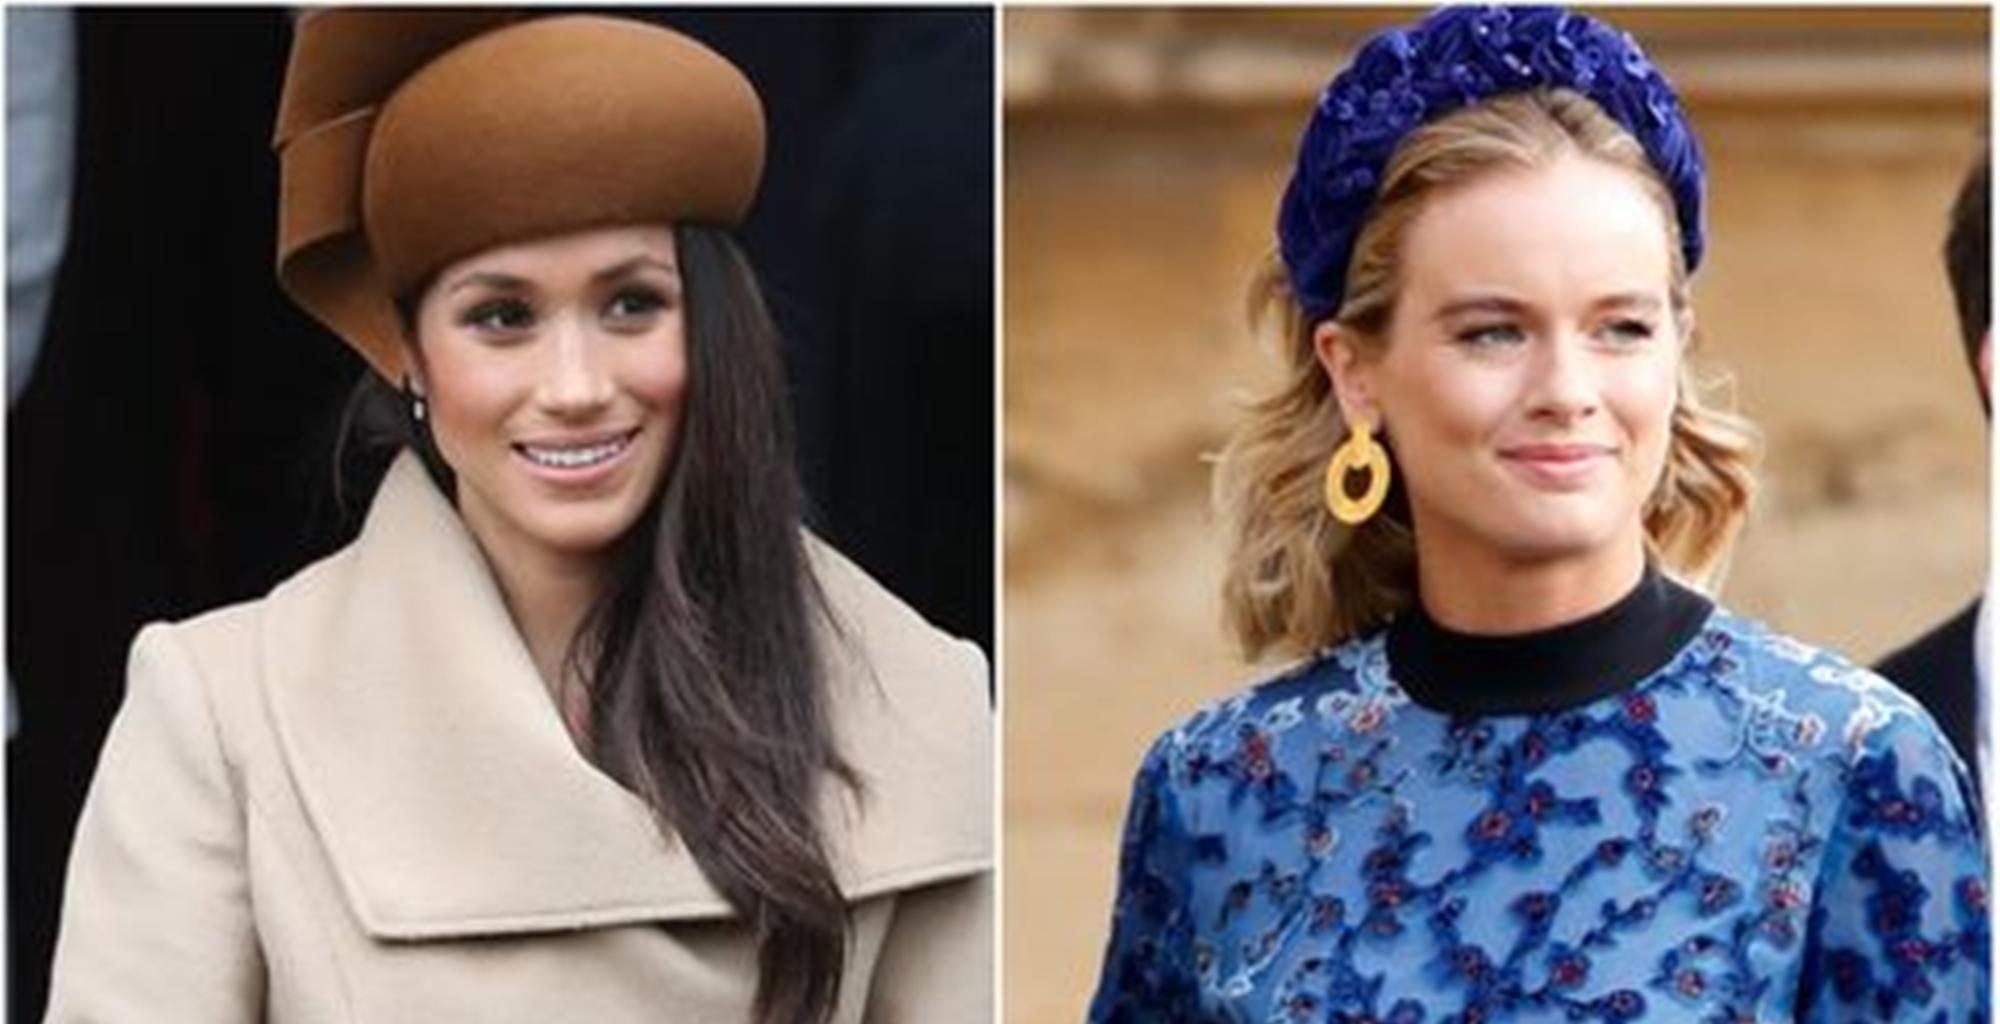 Prince Harry Going To The Wedding Of Ex Cressida Bonas -- How Does Meghan Markle Feel About His Decision?